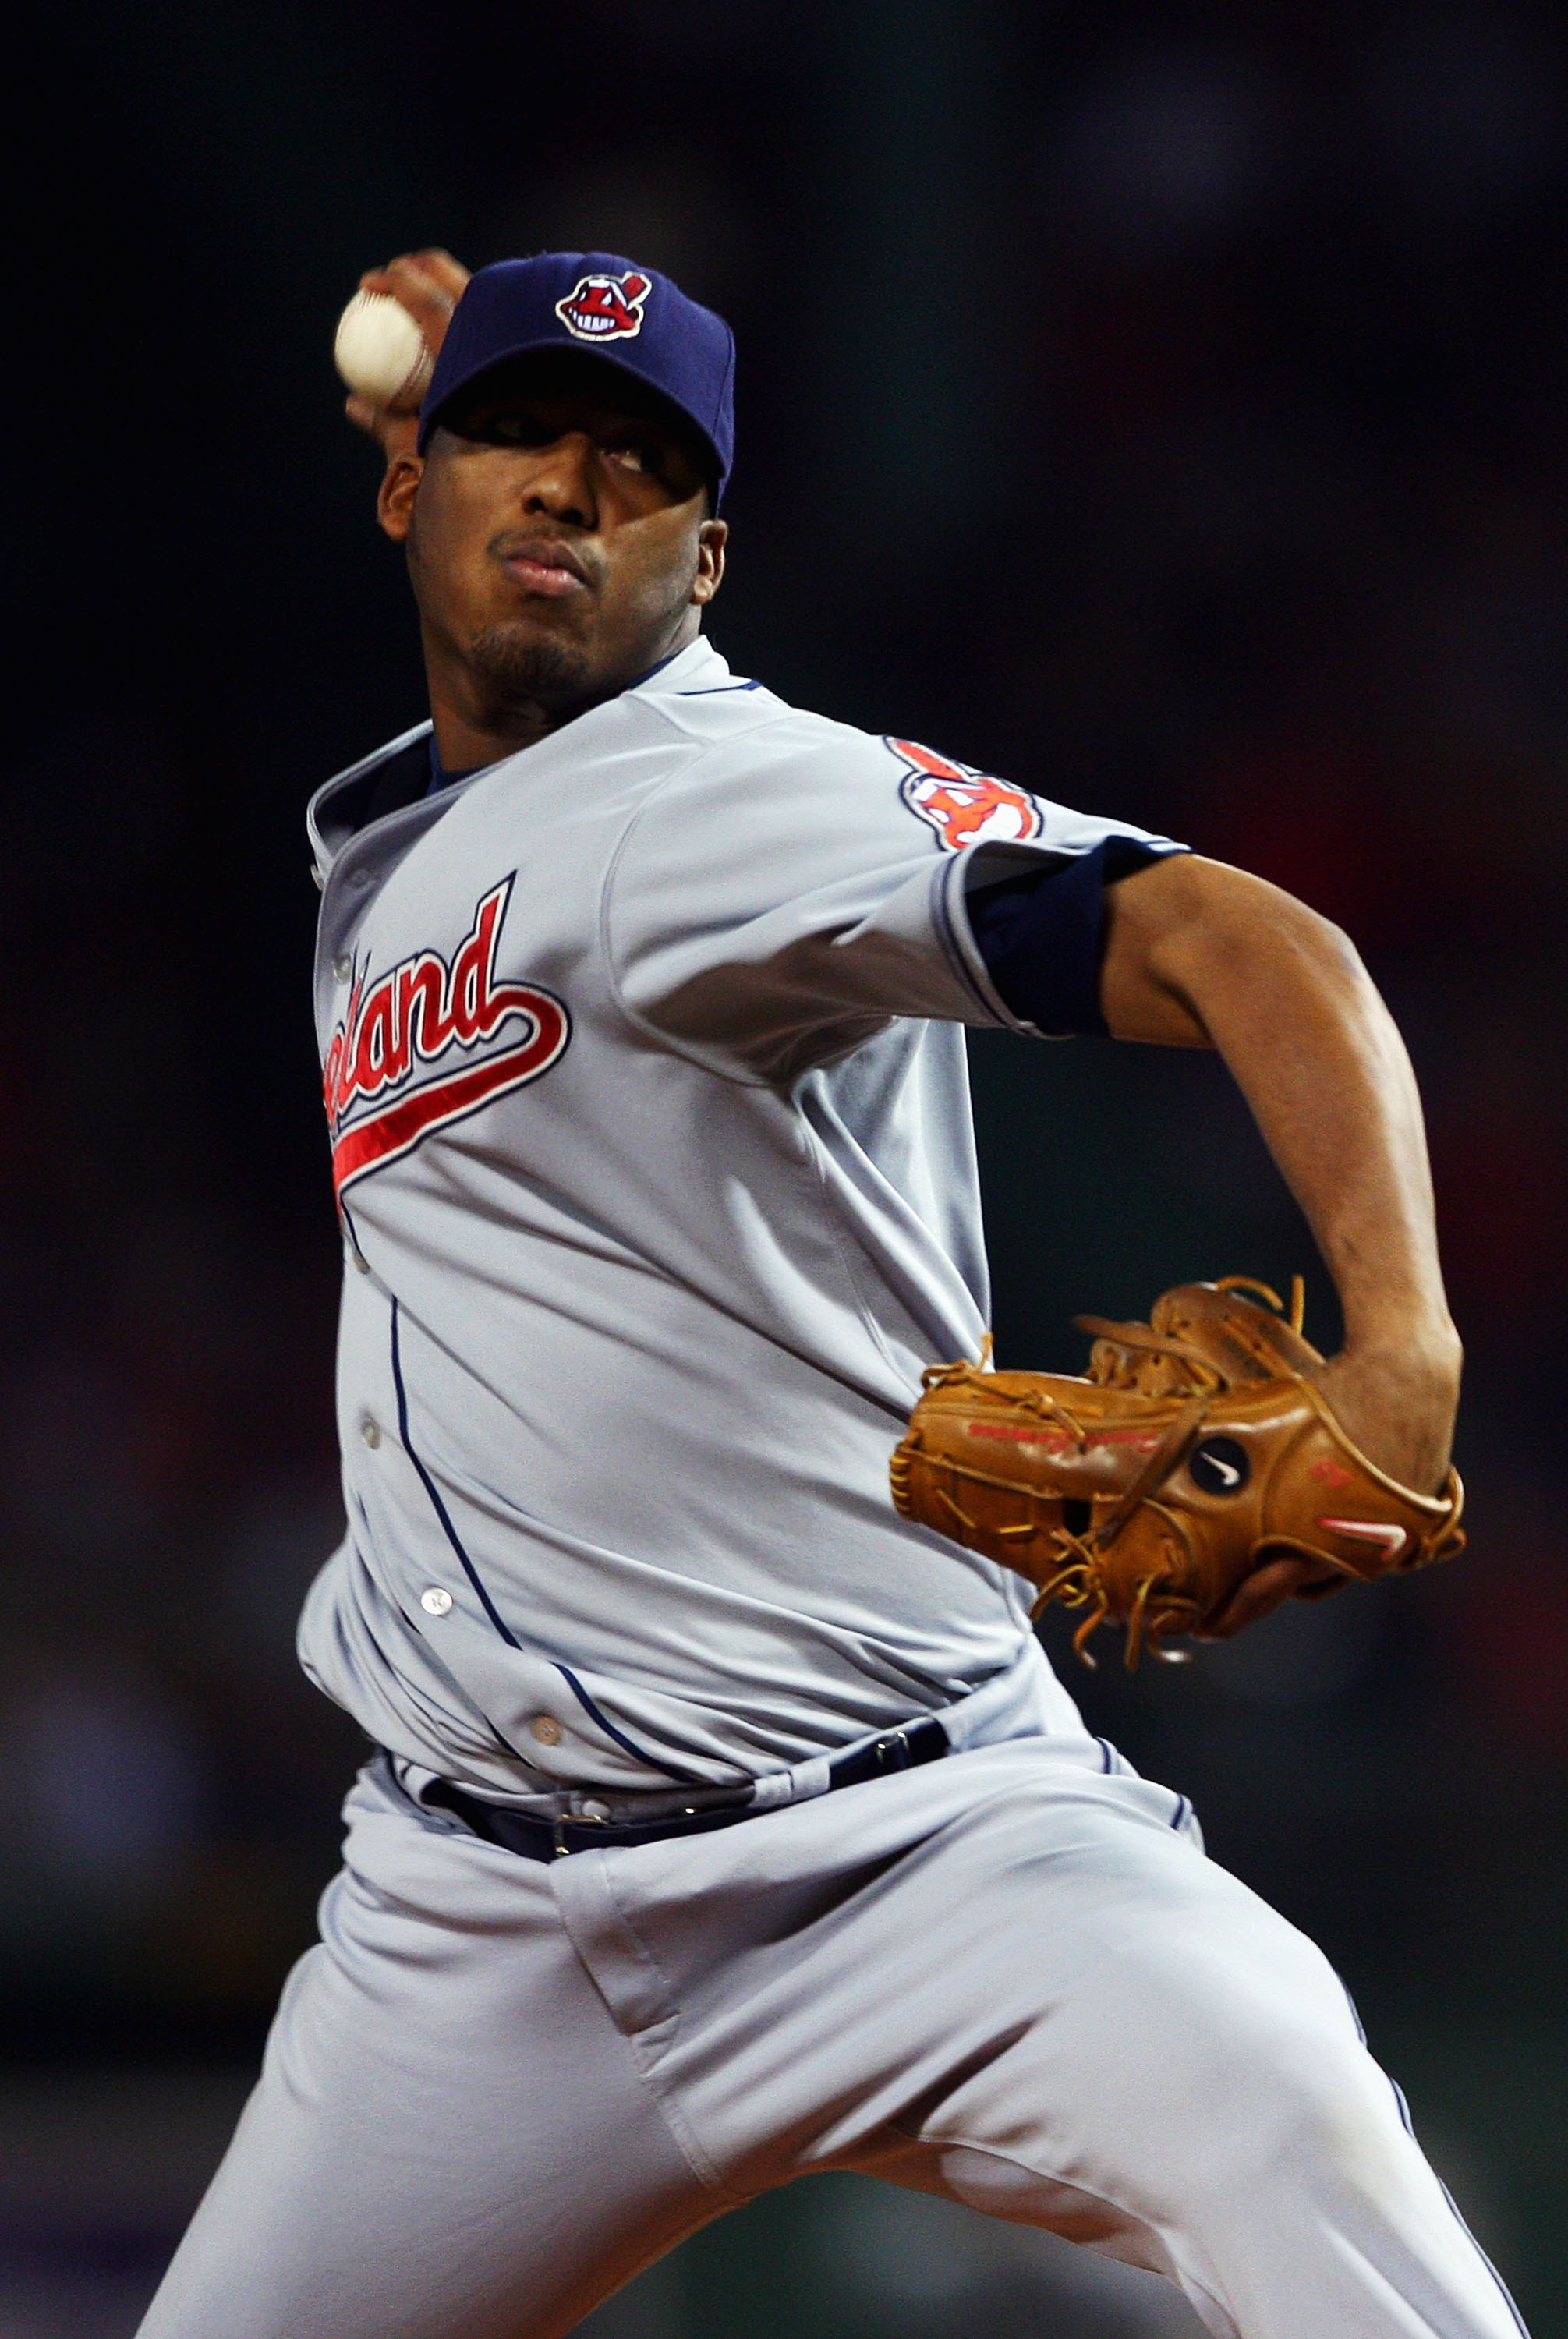 BOSTON - OCTOBER 13:  Starting pitcher Fausto Carmona #55 of the Cleveland Indians pitches of the Boston Red Sox during Game Two of the American League Championship Series at Fenway Park on October 13, 2007 in Boston, Massachusetts.  (Photo by Elsa/Getty